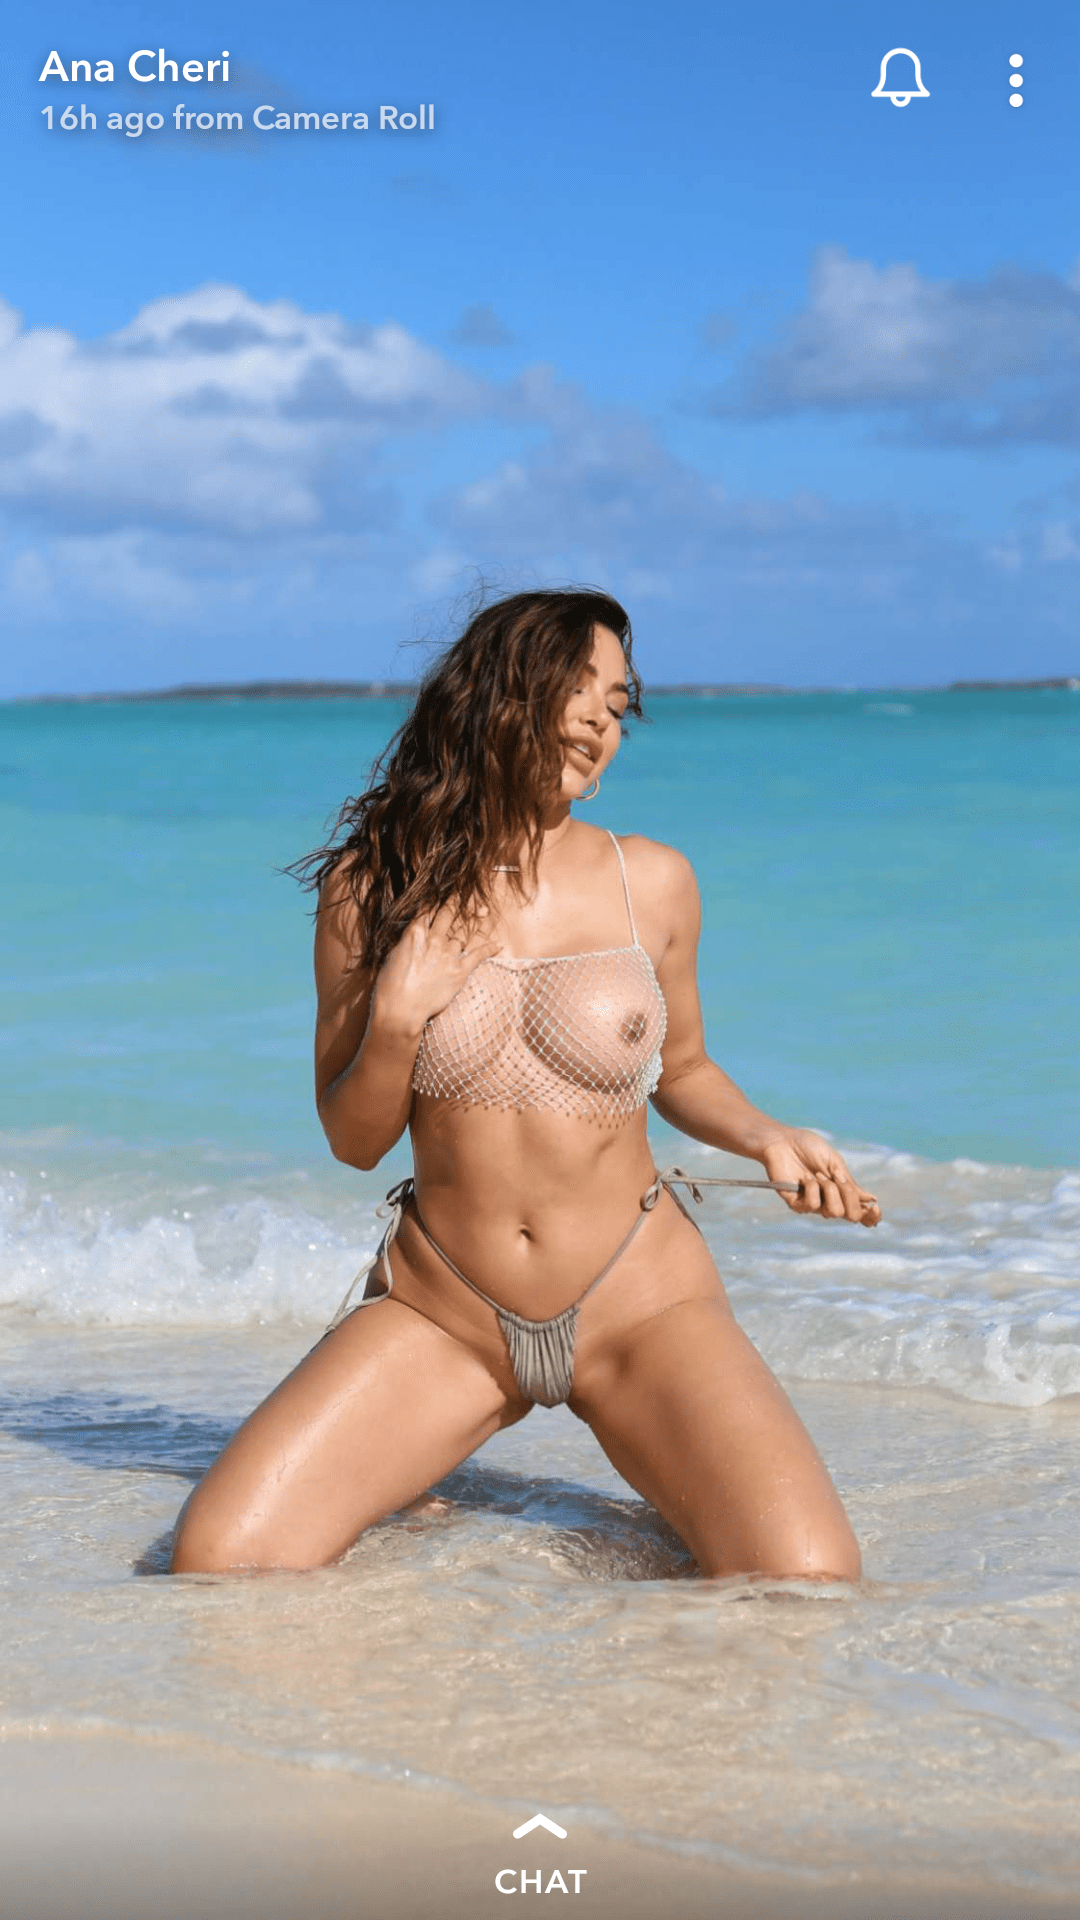 Ana Cheri Nude Onlyfans Leaked 0021